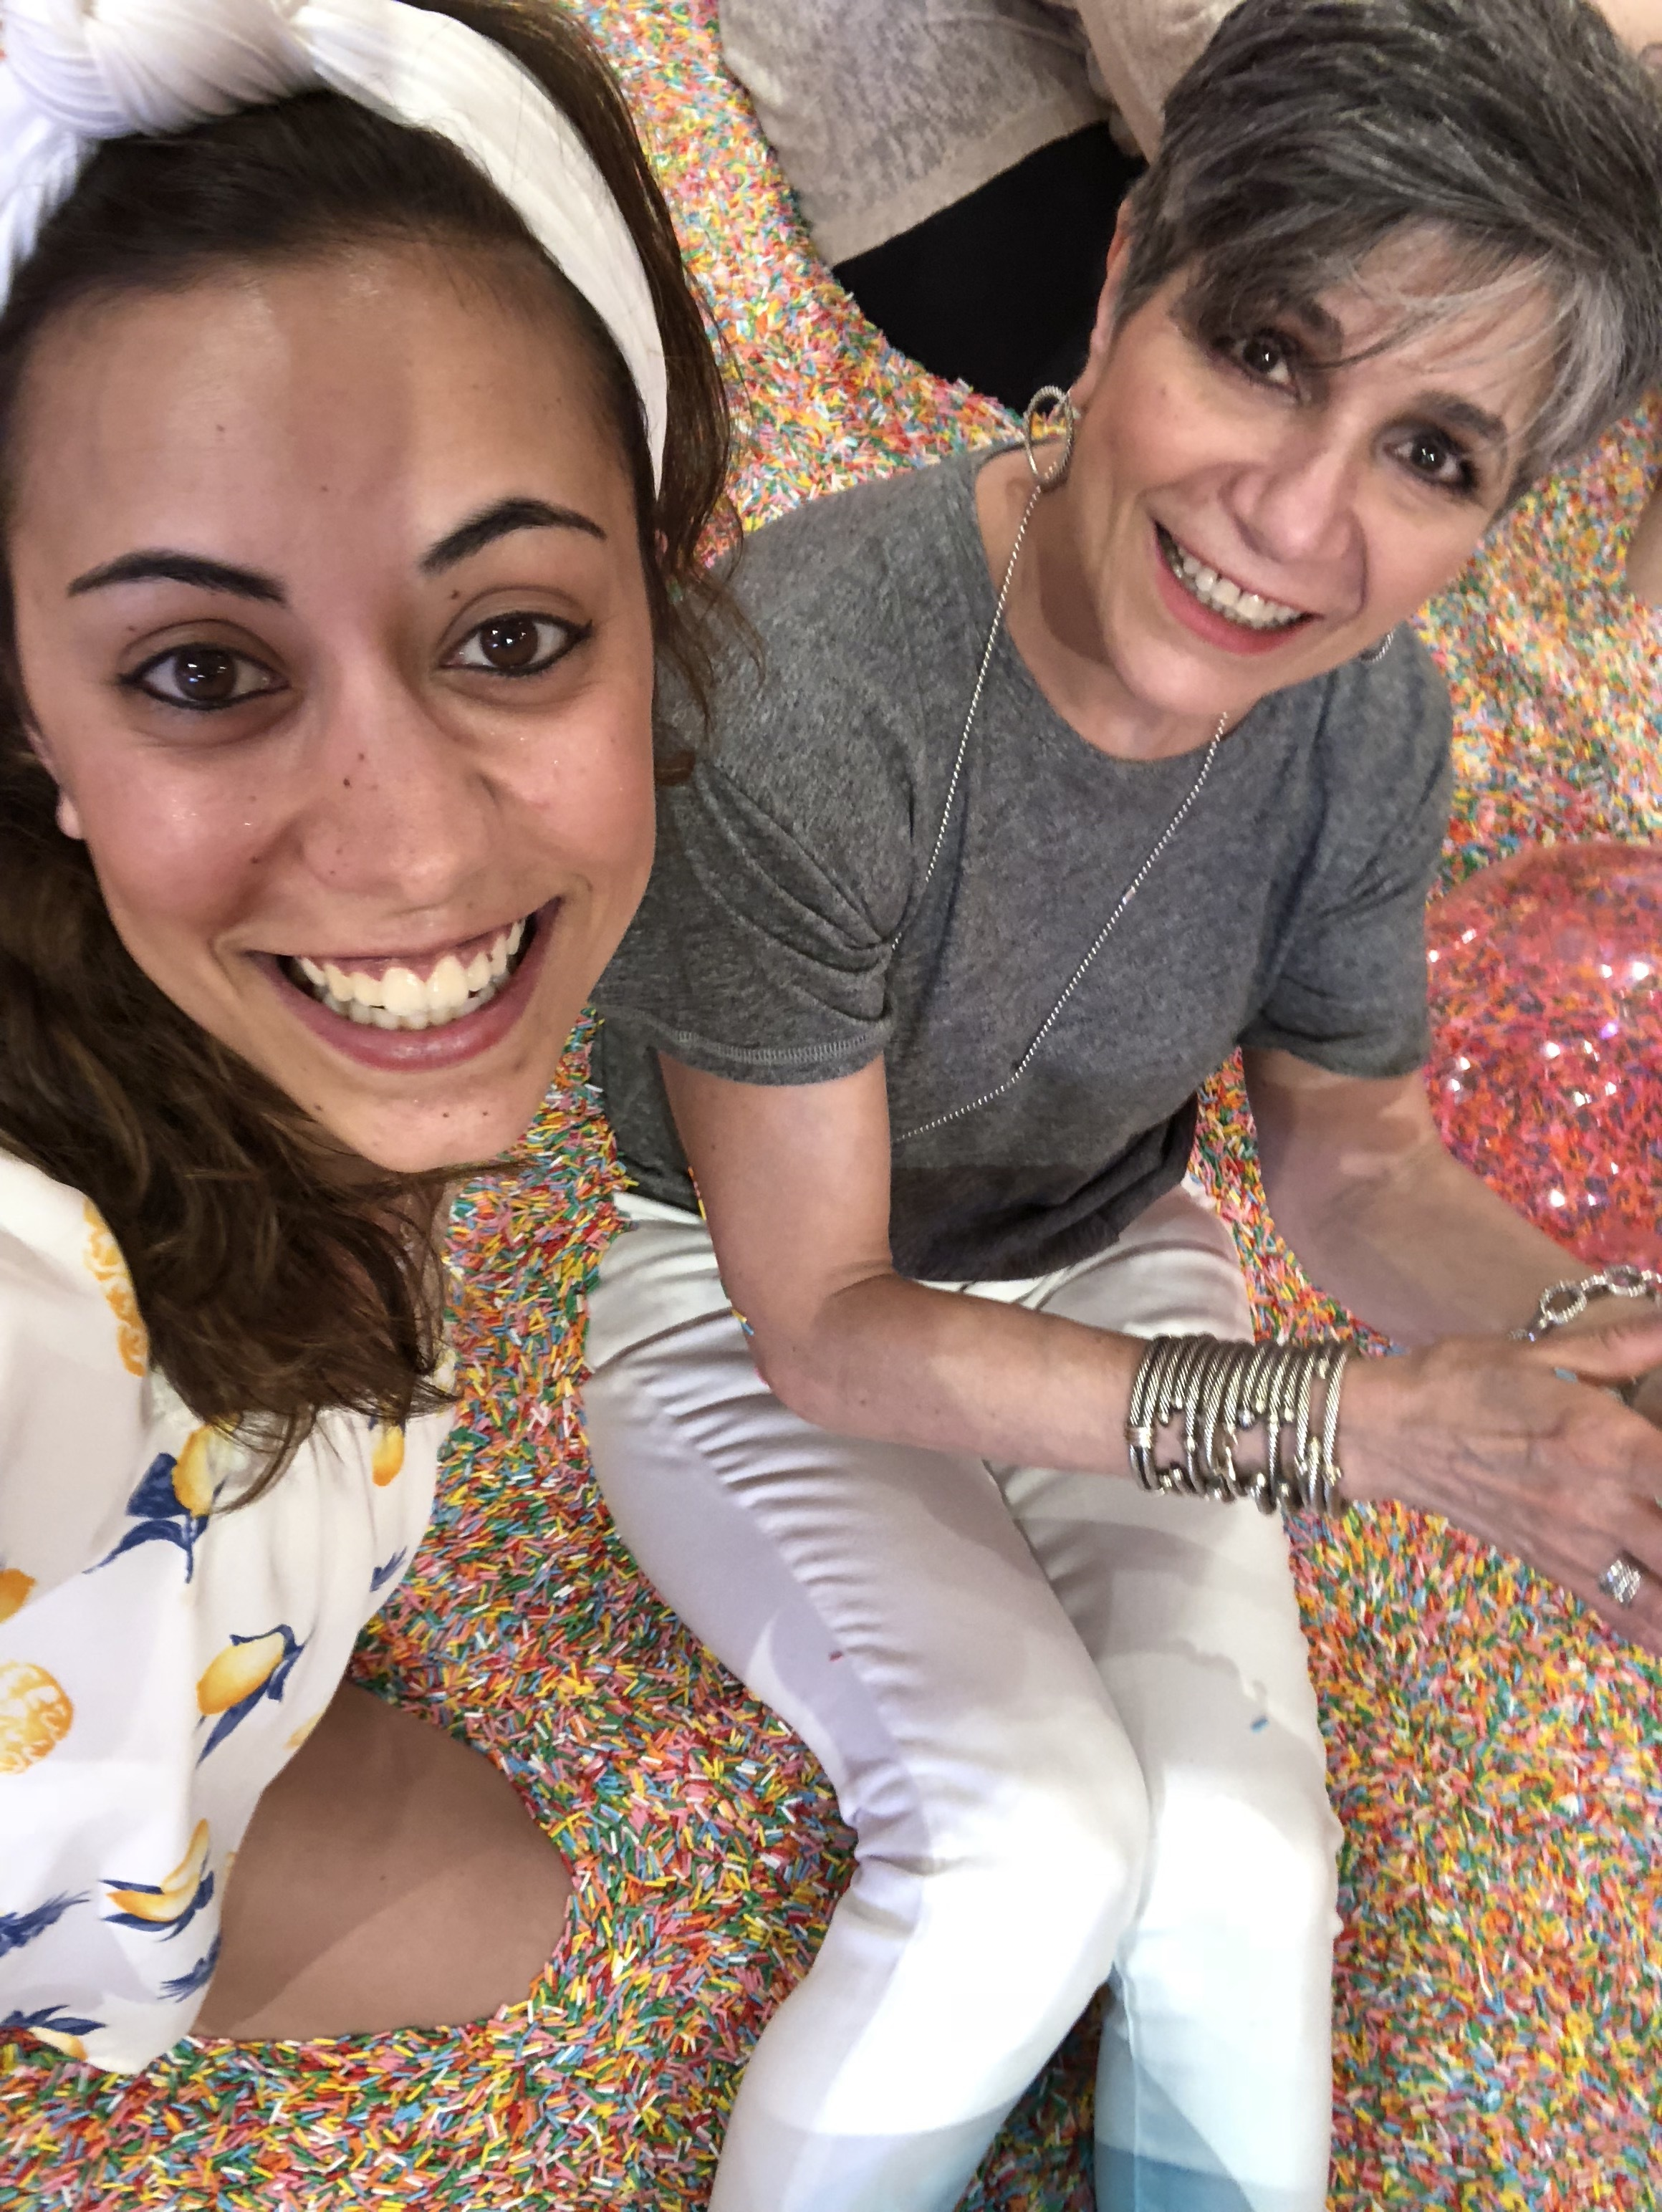 With the best boss ever in a pool full of jimmies...life doesn't get much better